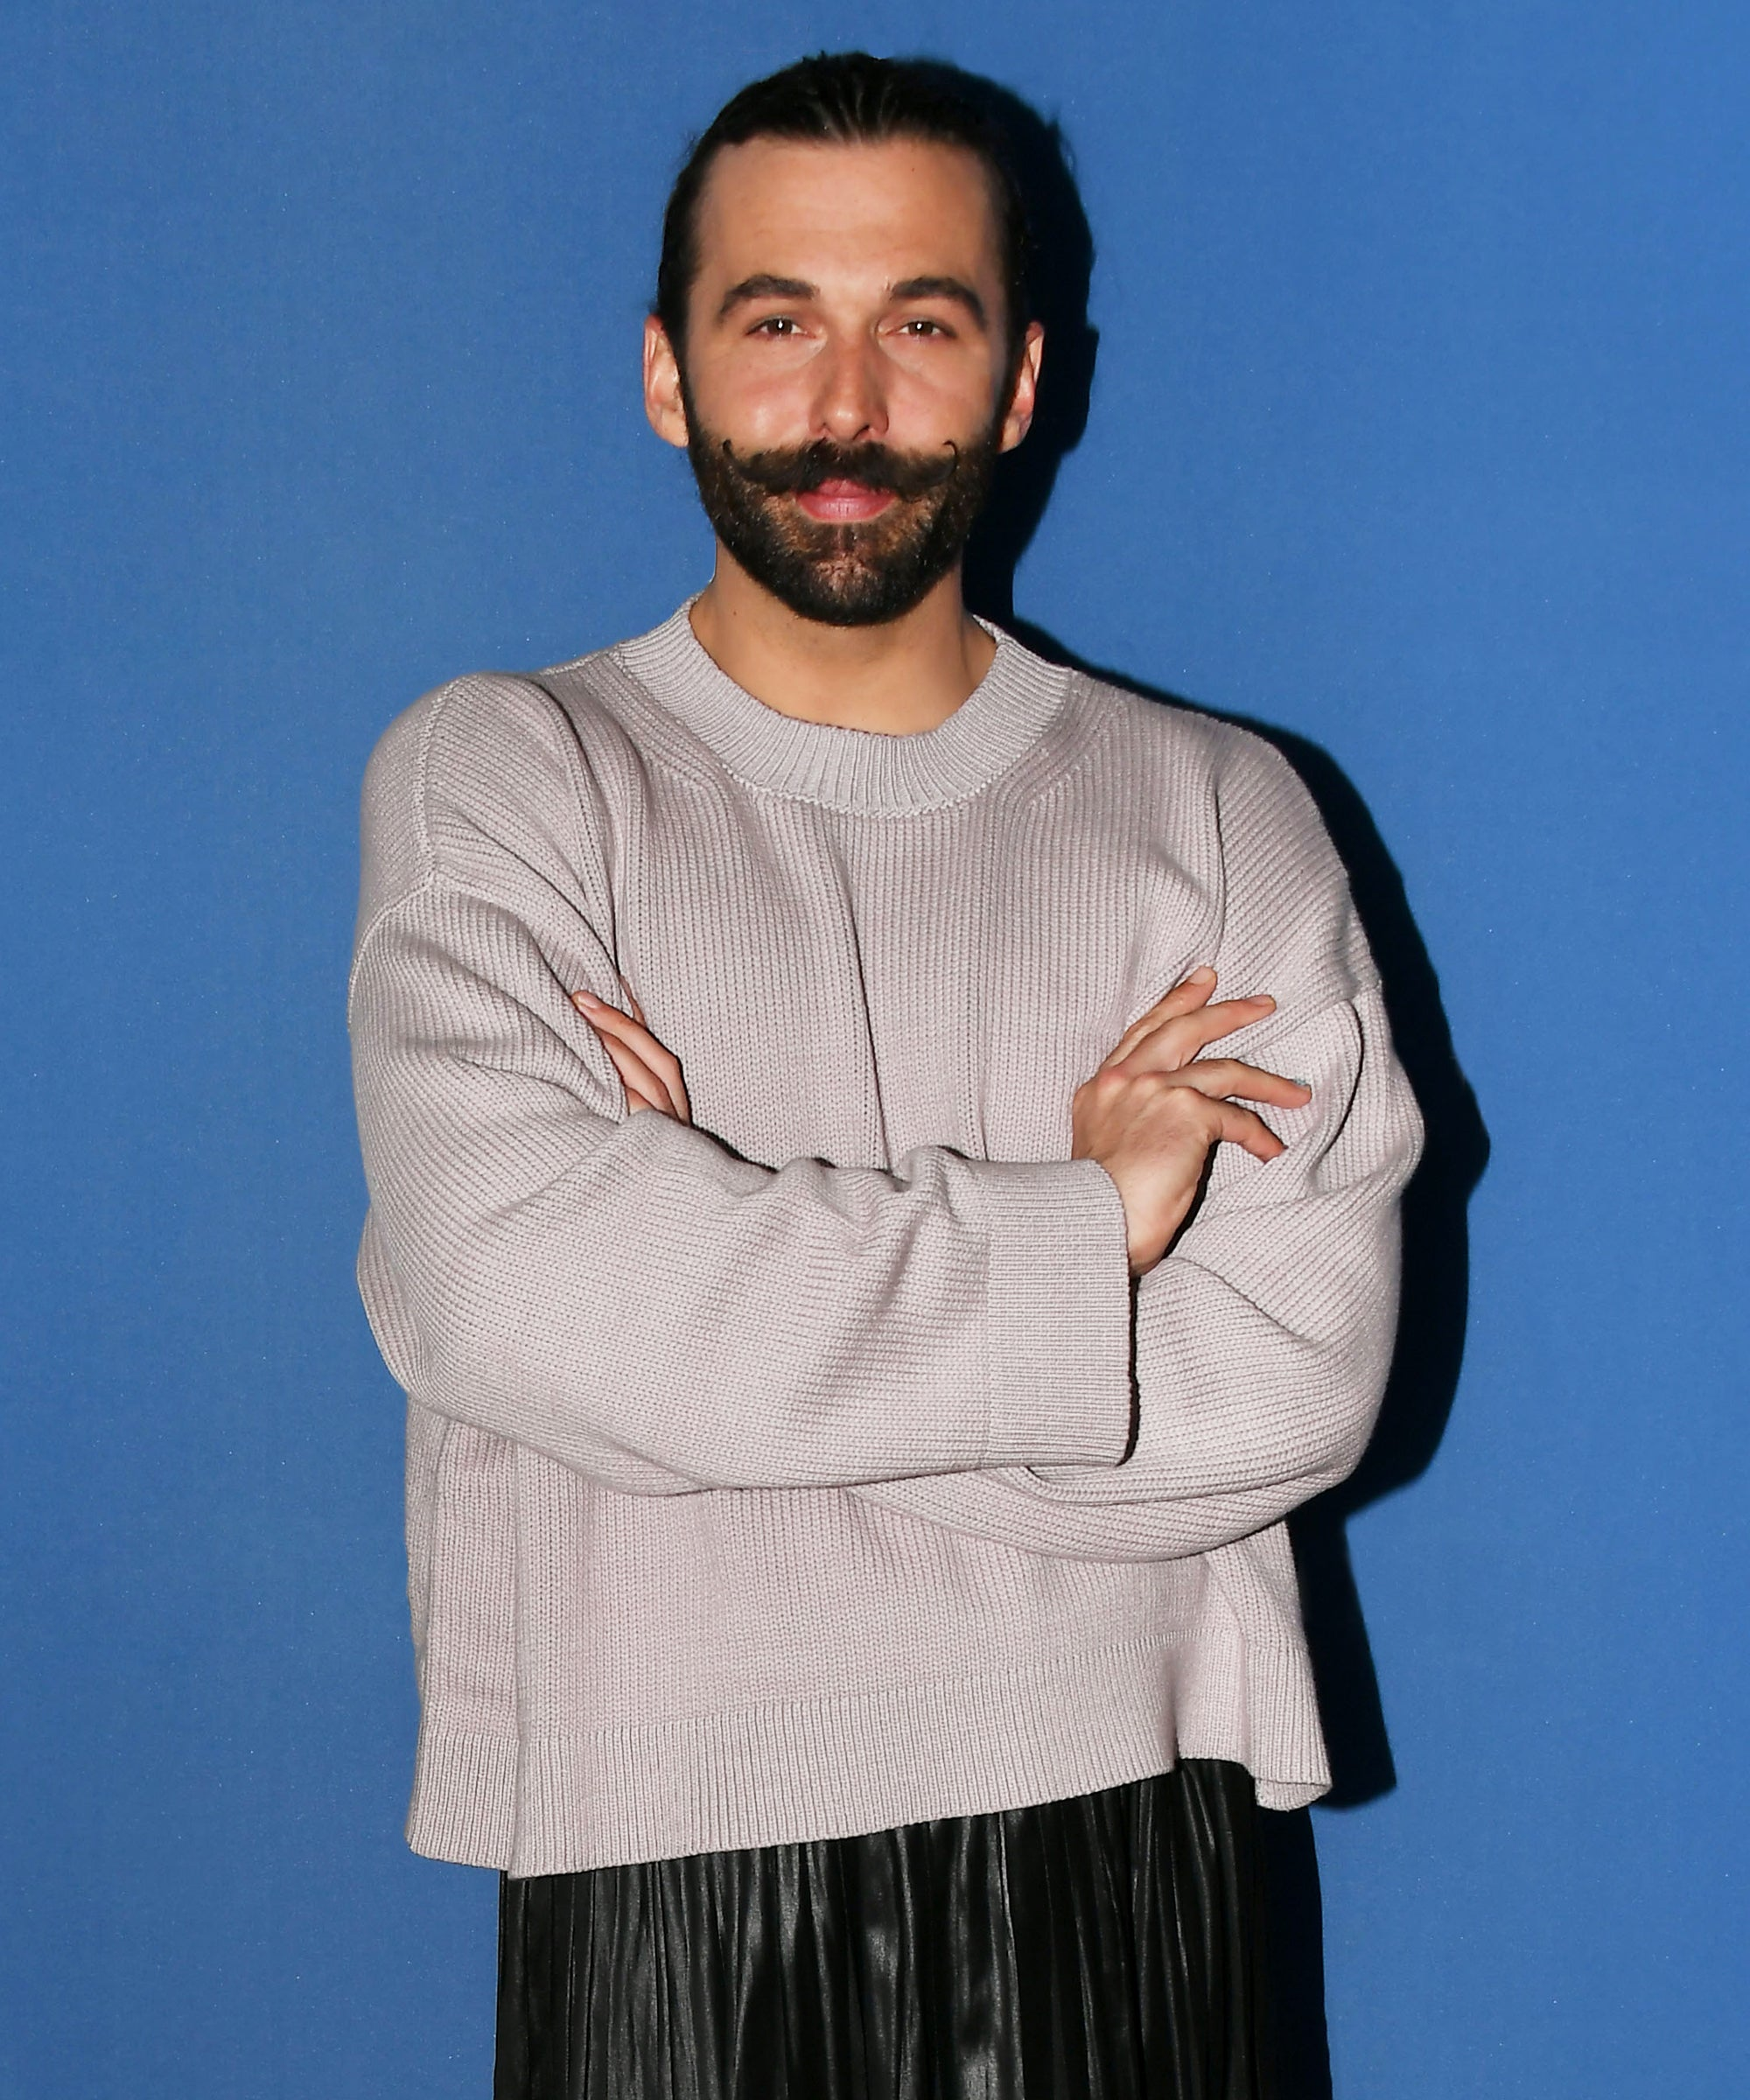 Jonathan Van Ness Opens Up About The Long-Lasting Effects Of Bullying